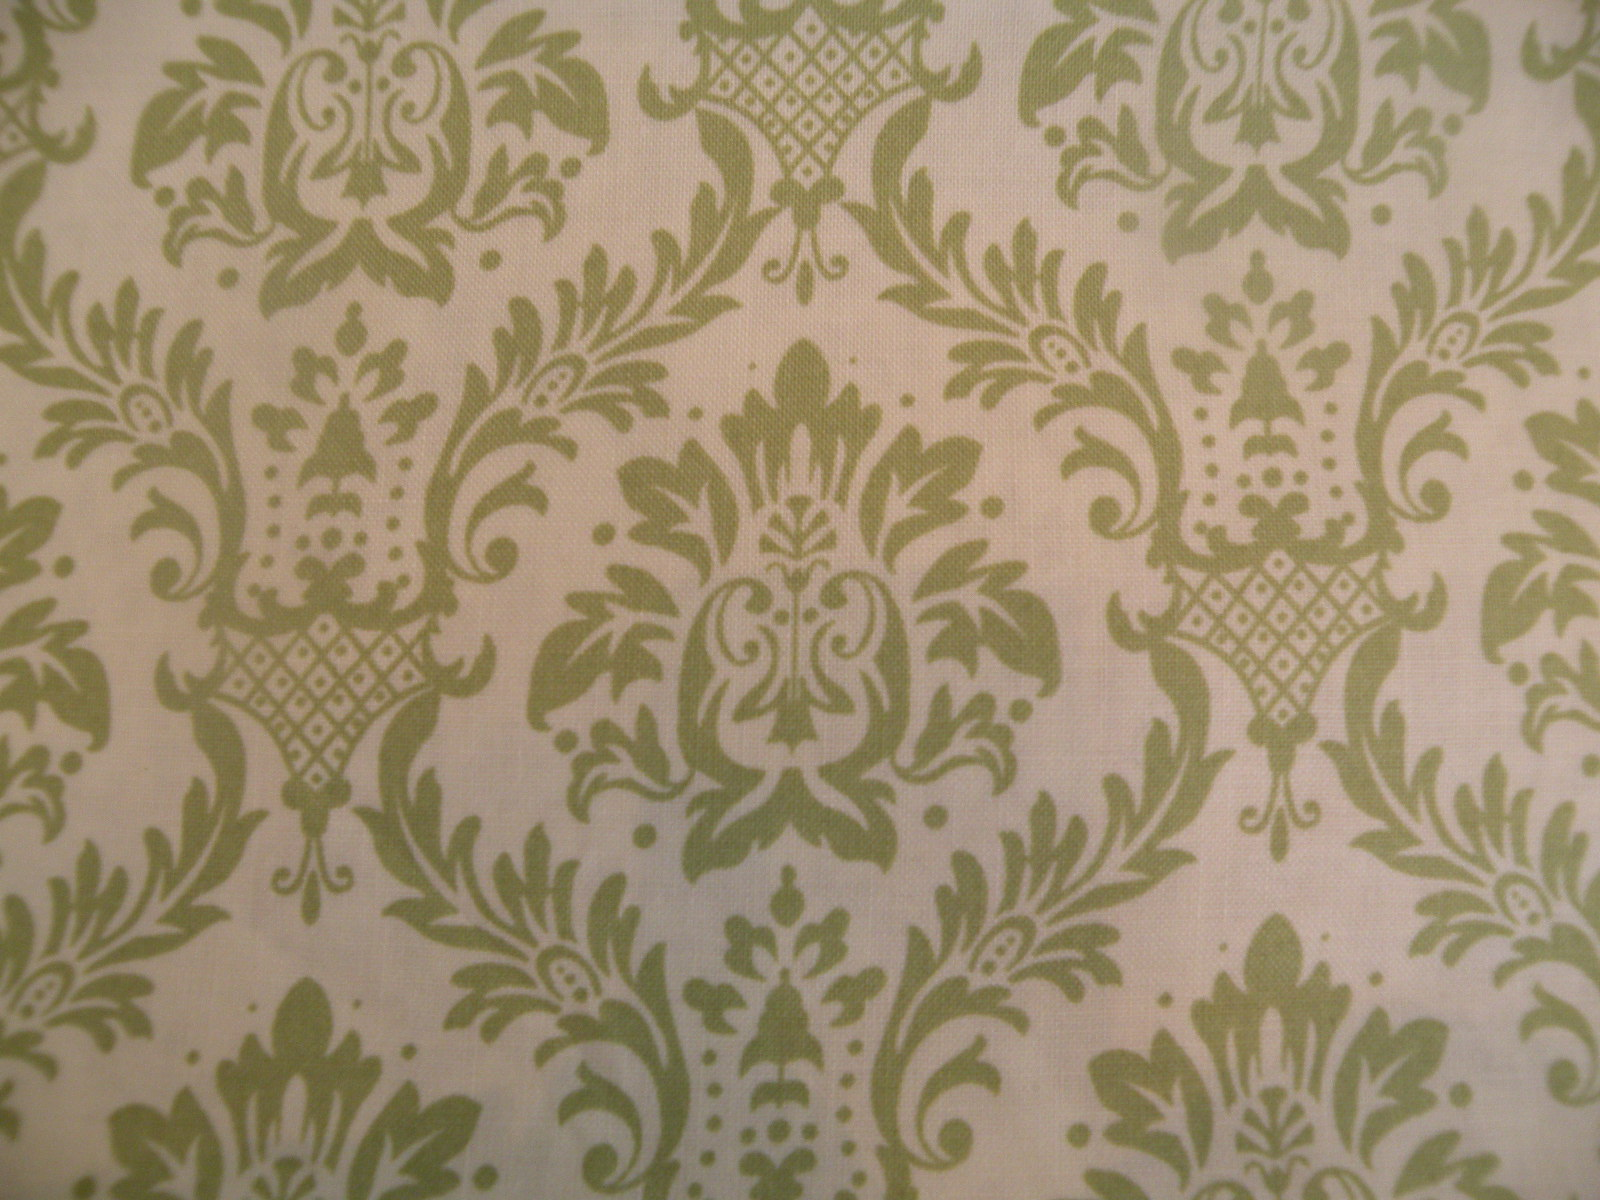 Green Damask on Cream